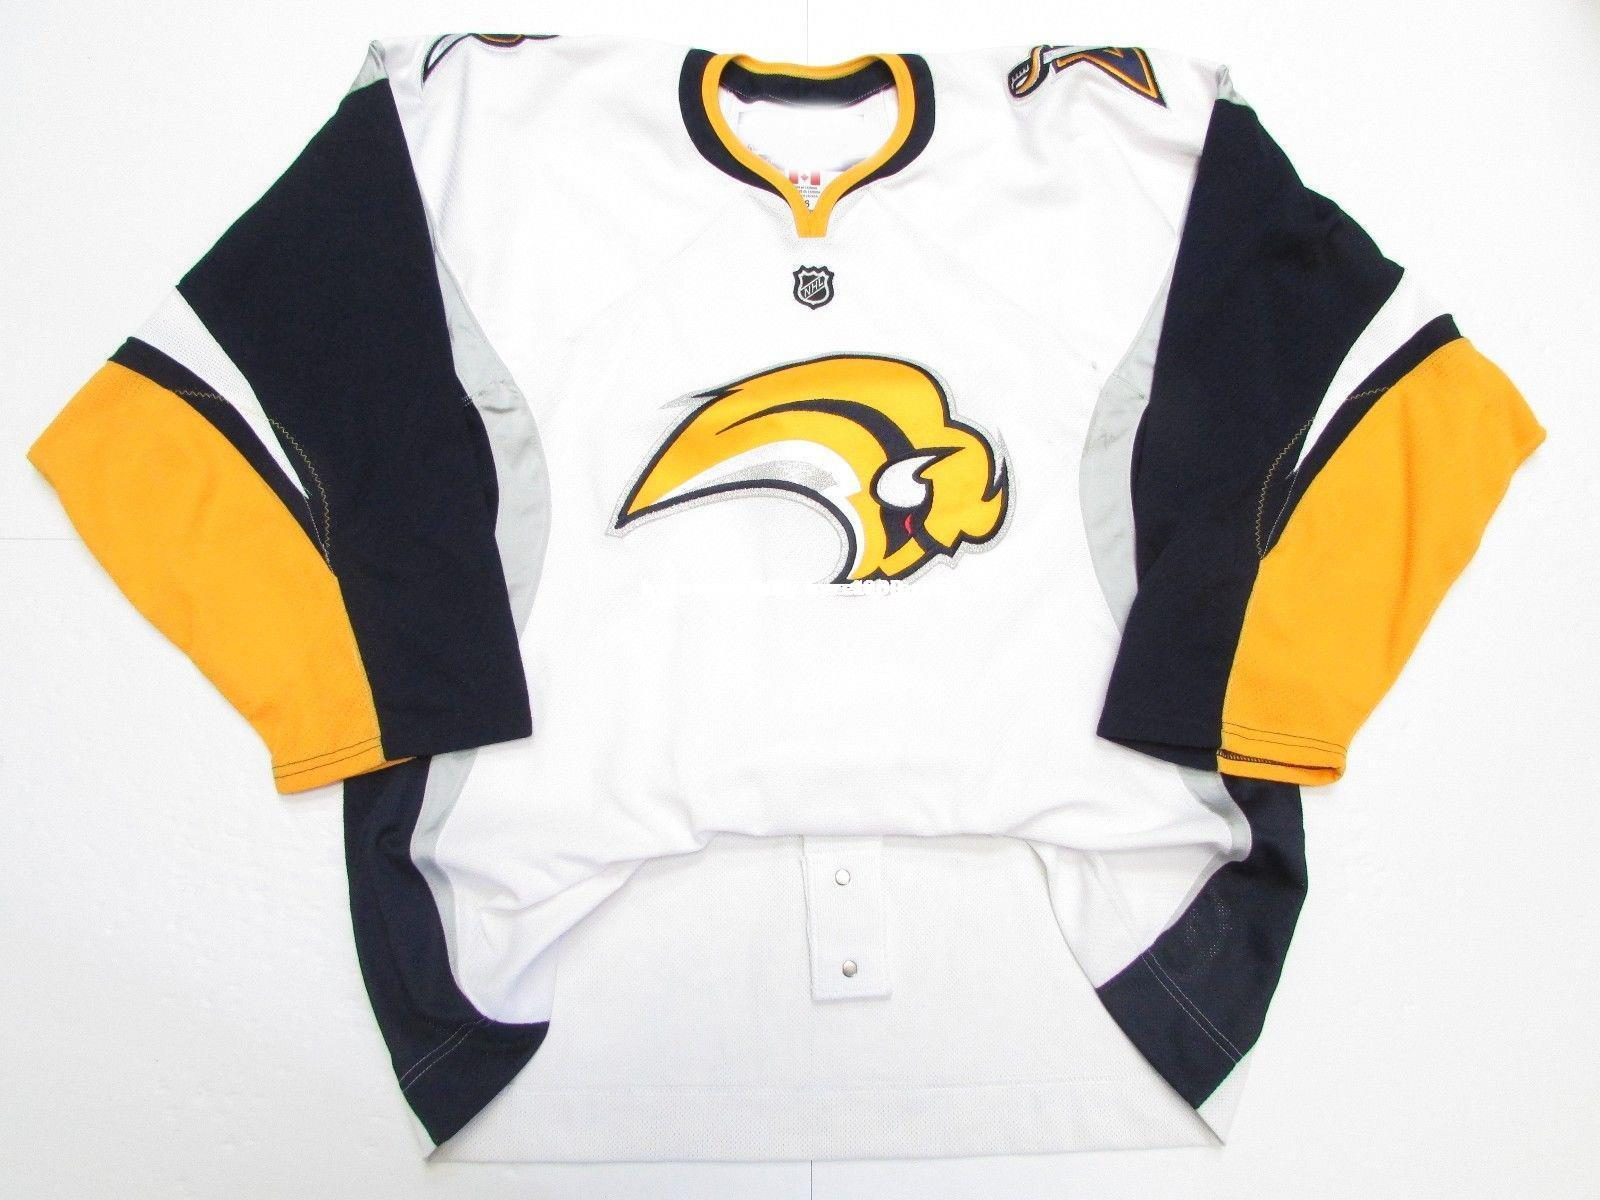 72e395029 Cheap Authentic Ccm Hockey Jerseys Cheap Best Best Hockey Jersey Prices